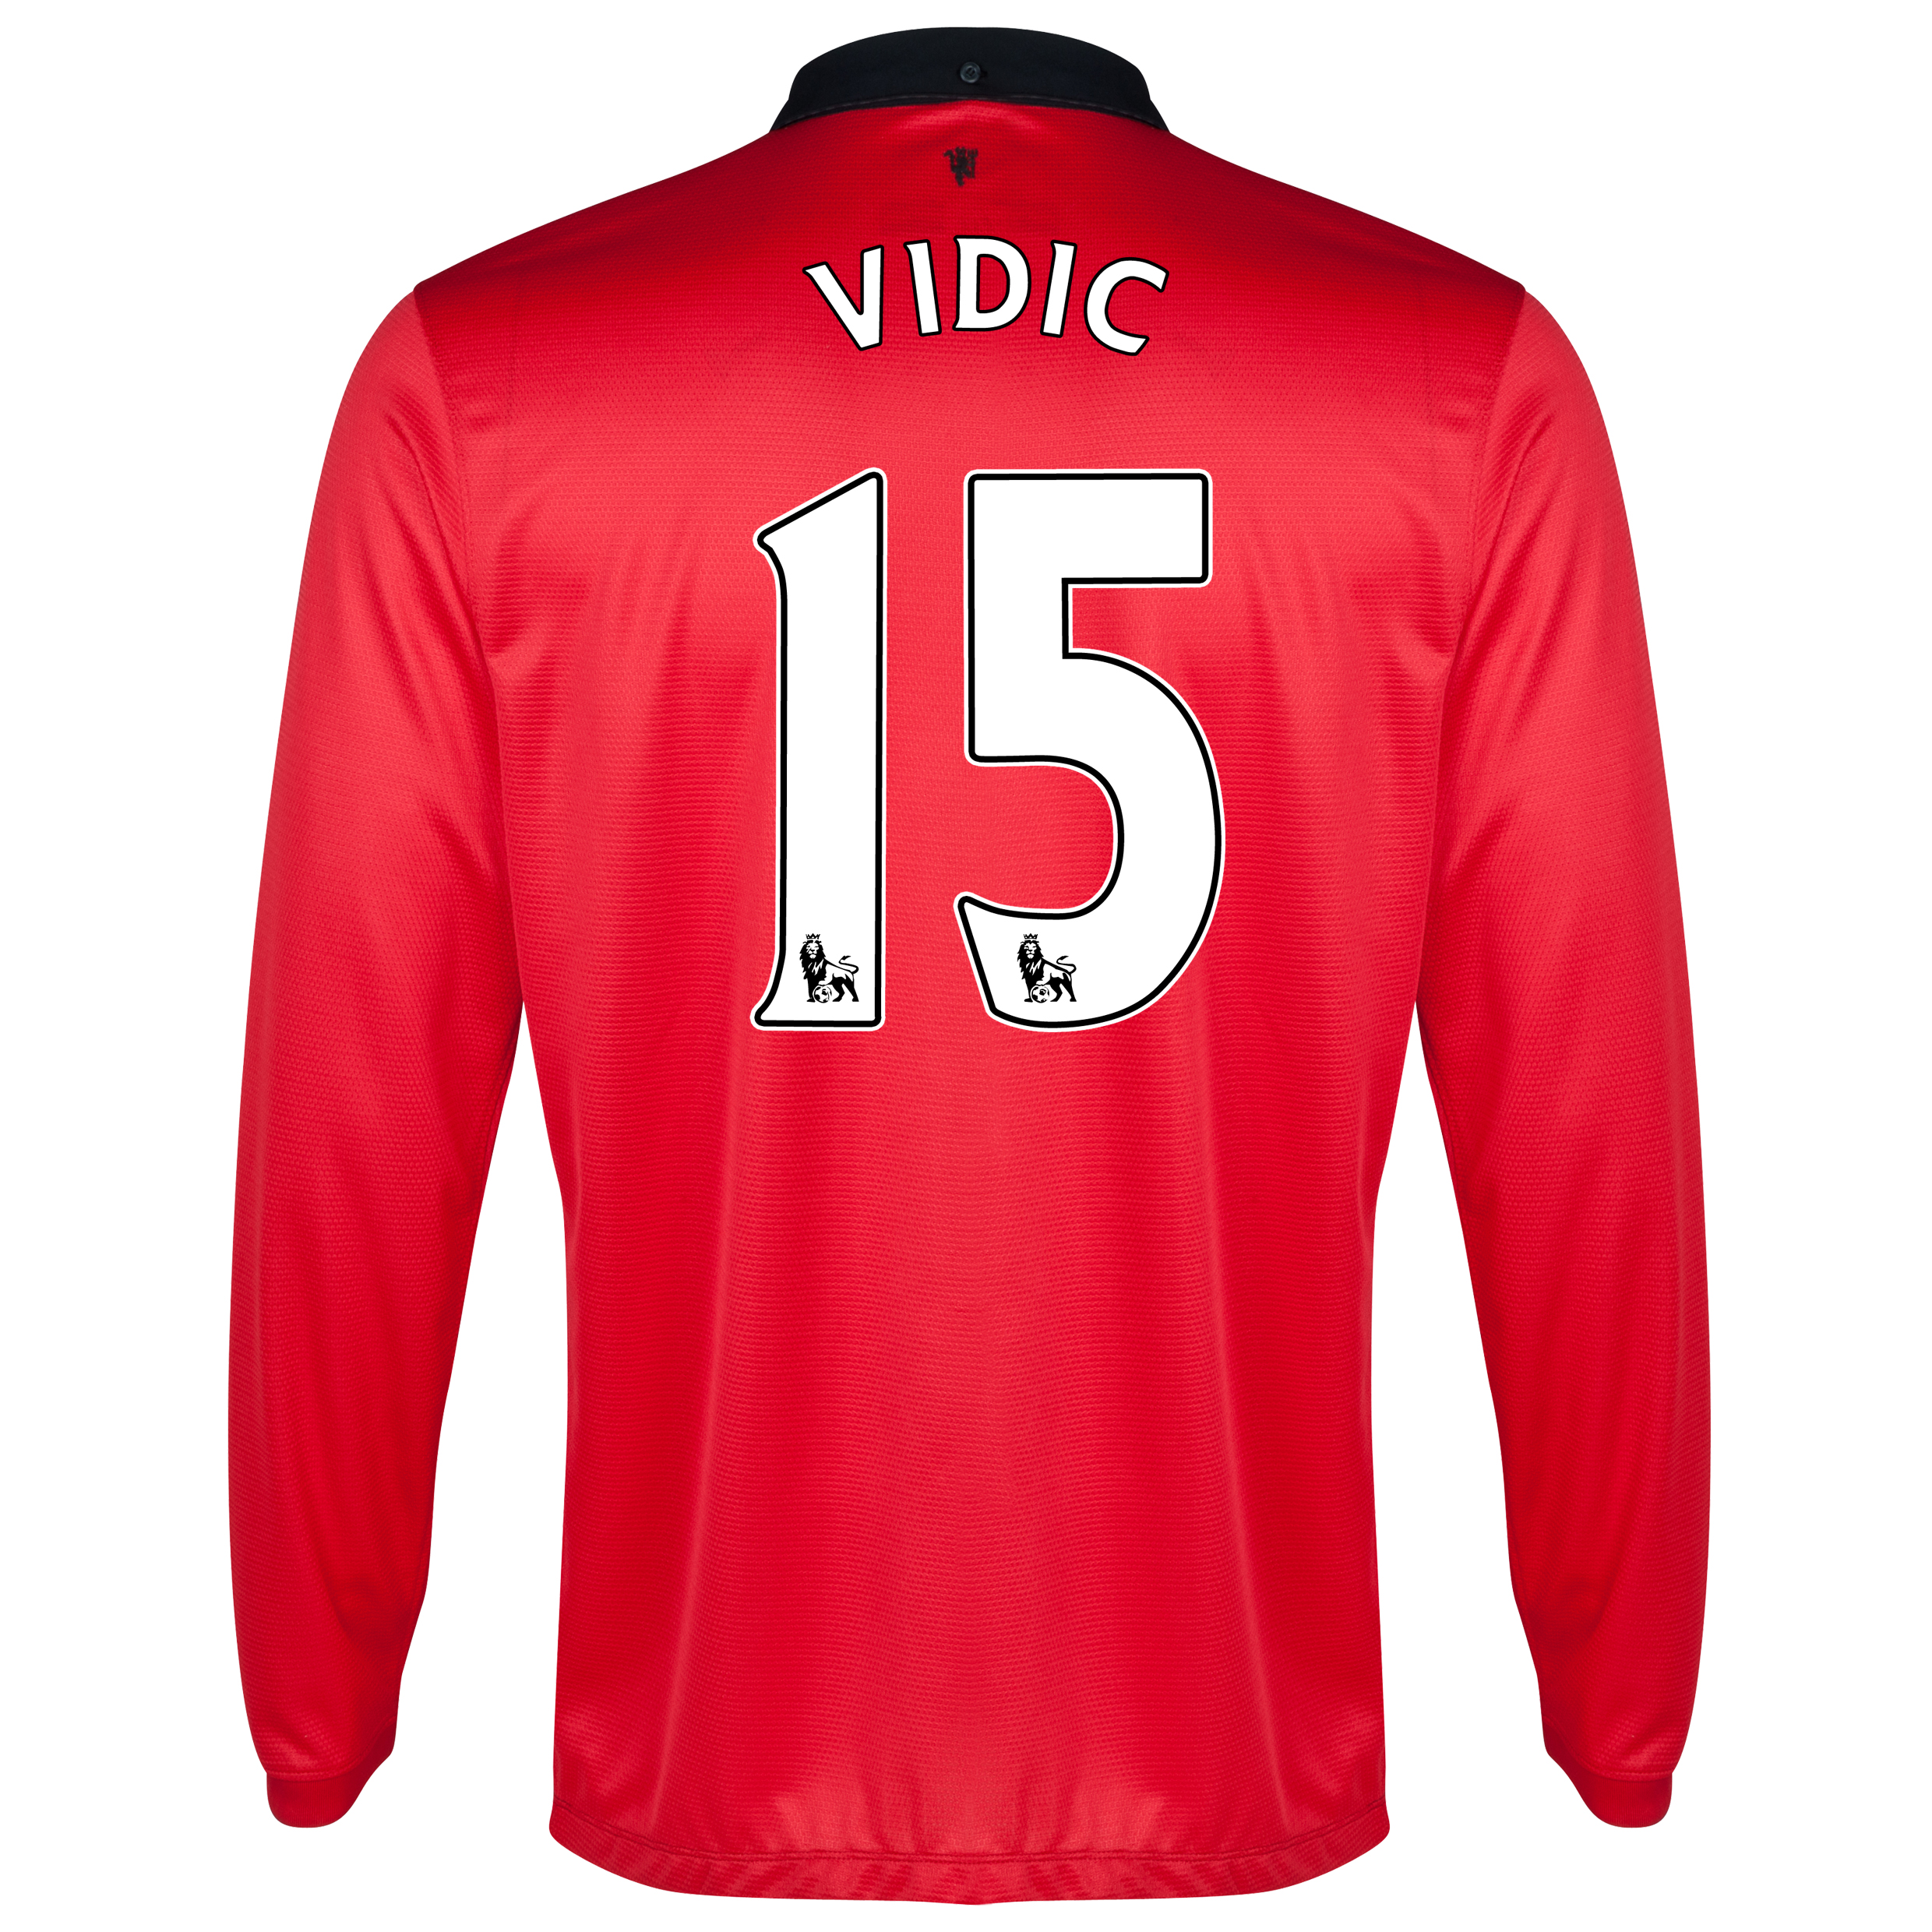 Manchester United Home Shirt 2013/14 - Long Sleeved with Vidic 15 printing